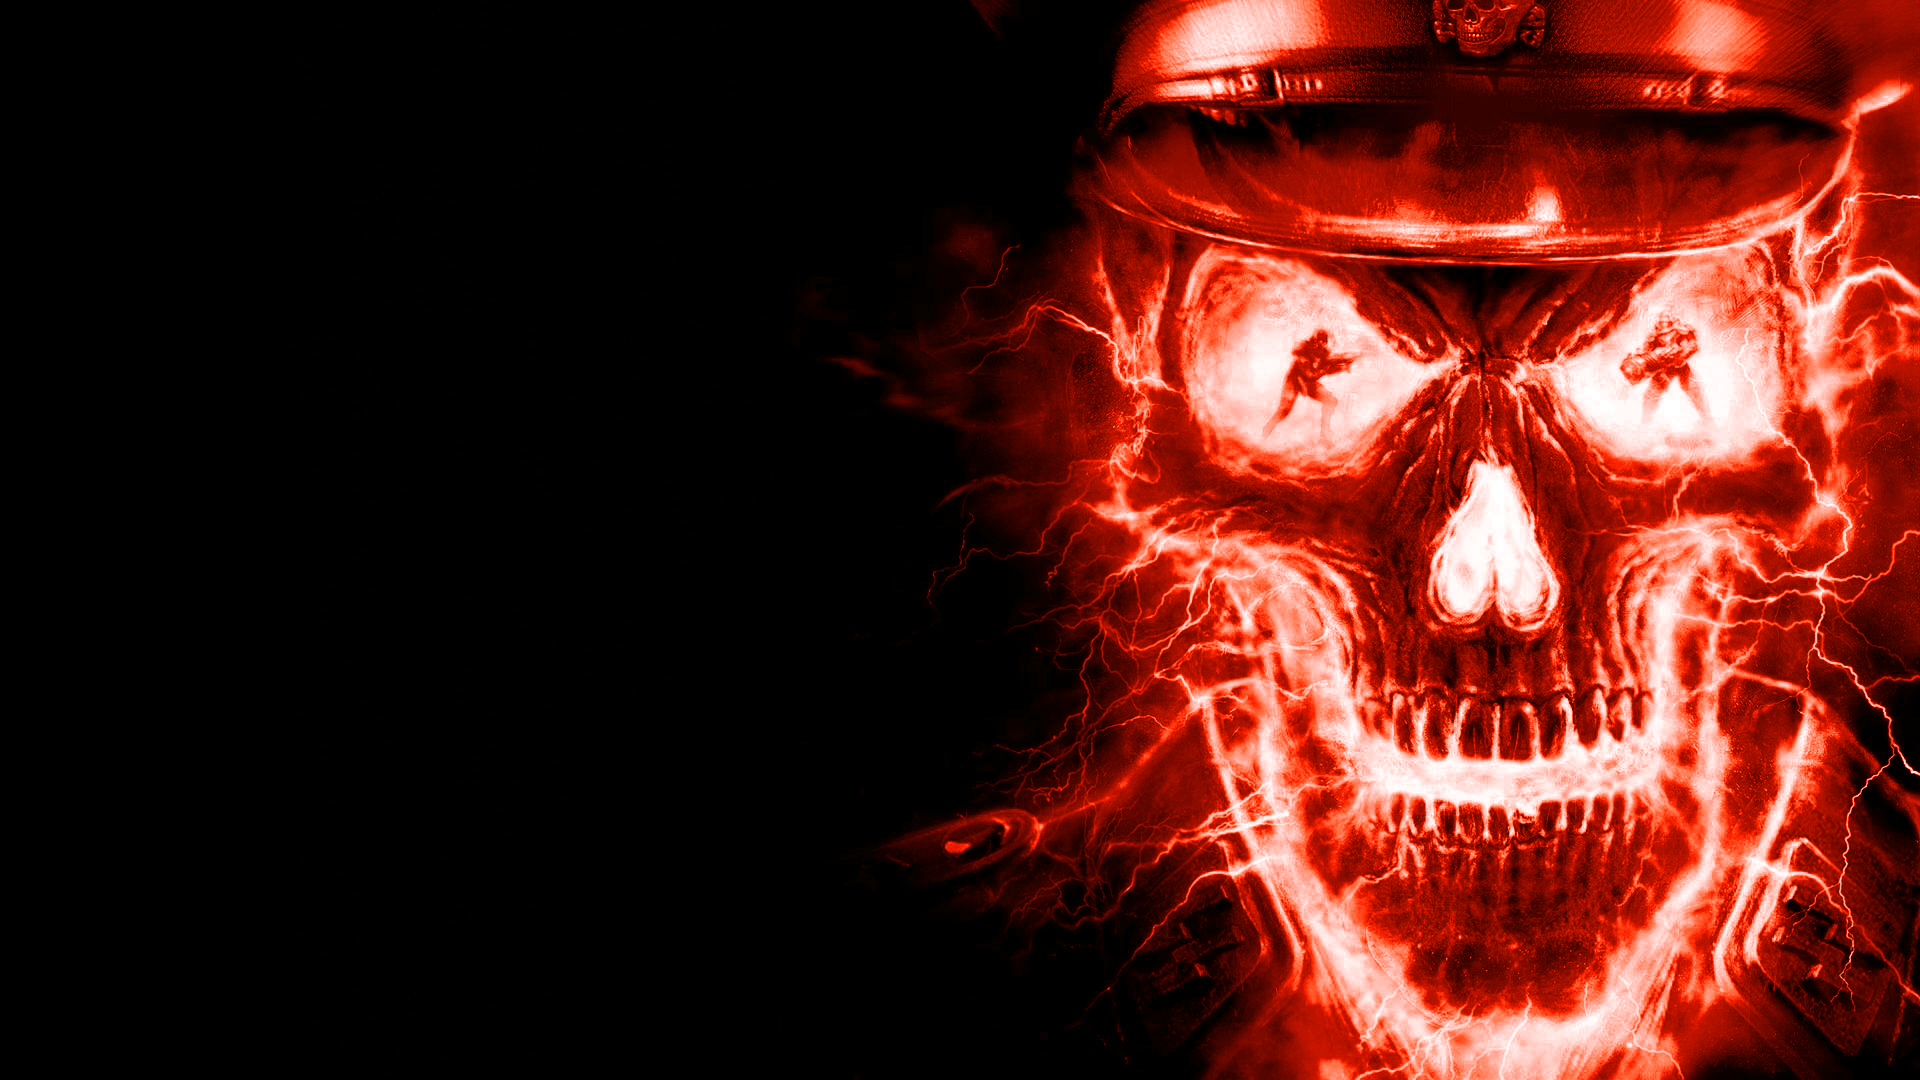 skull, background, texture, photo, fire skull texture background